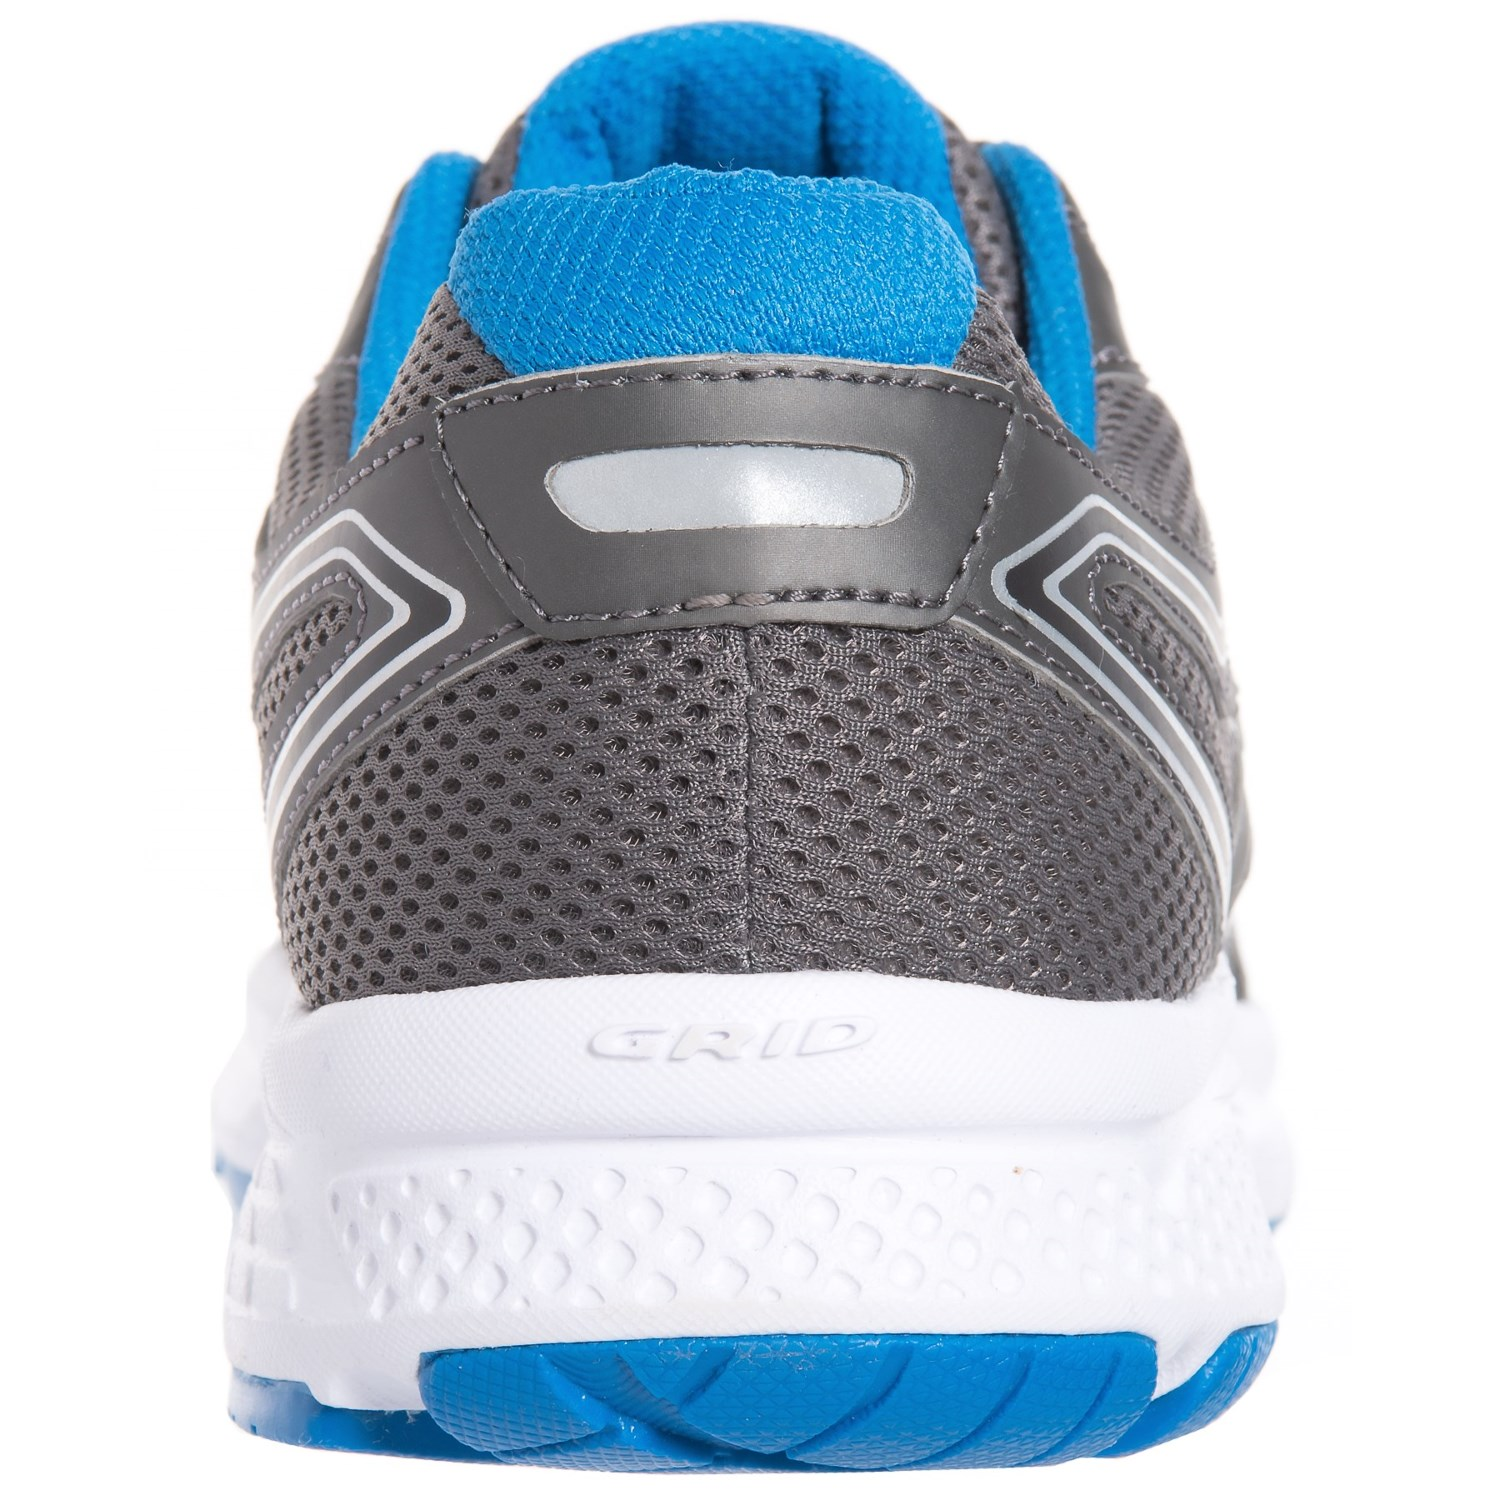 c3701e361e9d Saucony Grid Cohesion 11 Running Shoes (For Men) - Save 25%